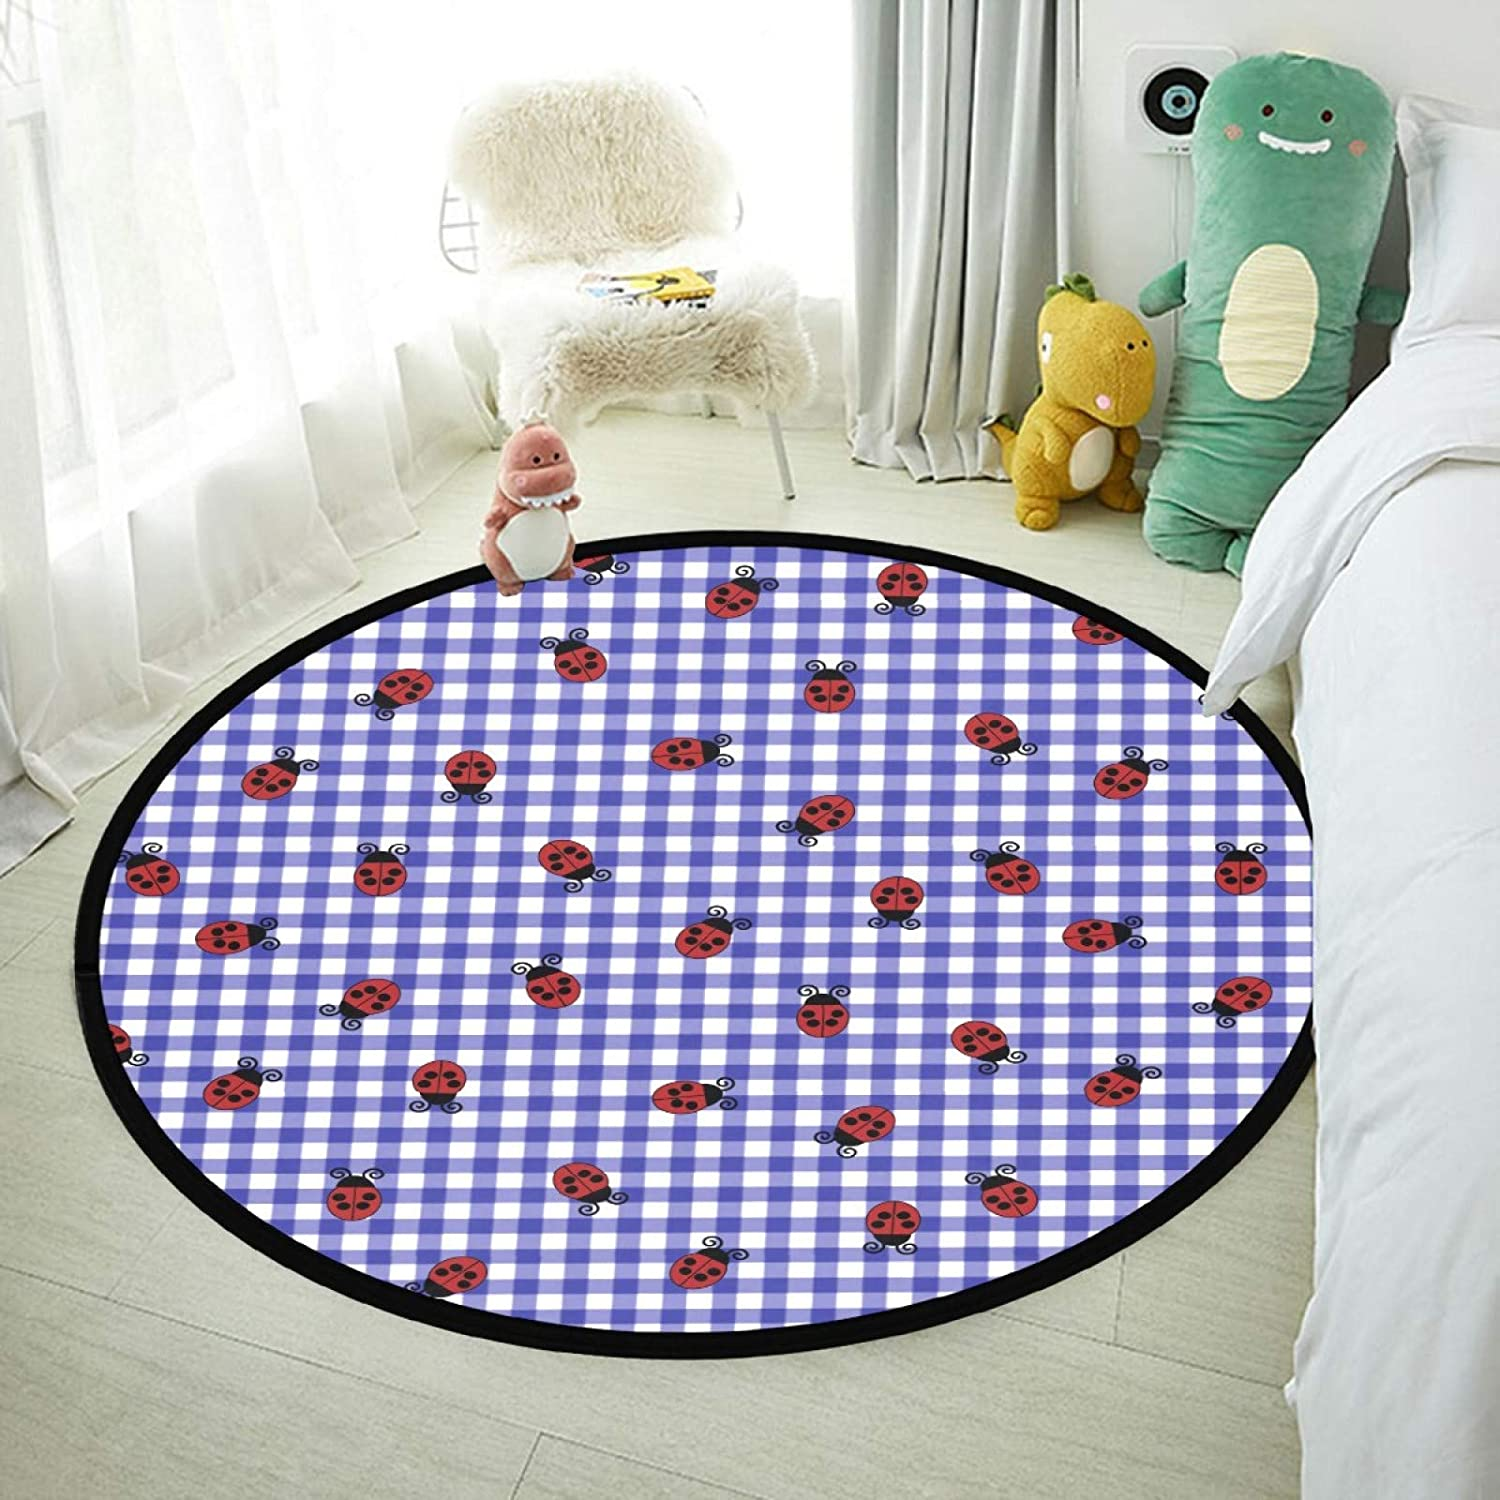 Round Area Rug for Baby Anti-Skid Luxury Carpets for Home Decor Nursery Bedroom and Living Room Cartoon Ladybug Insect Plaid 31.5